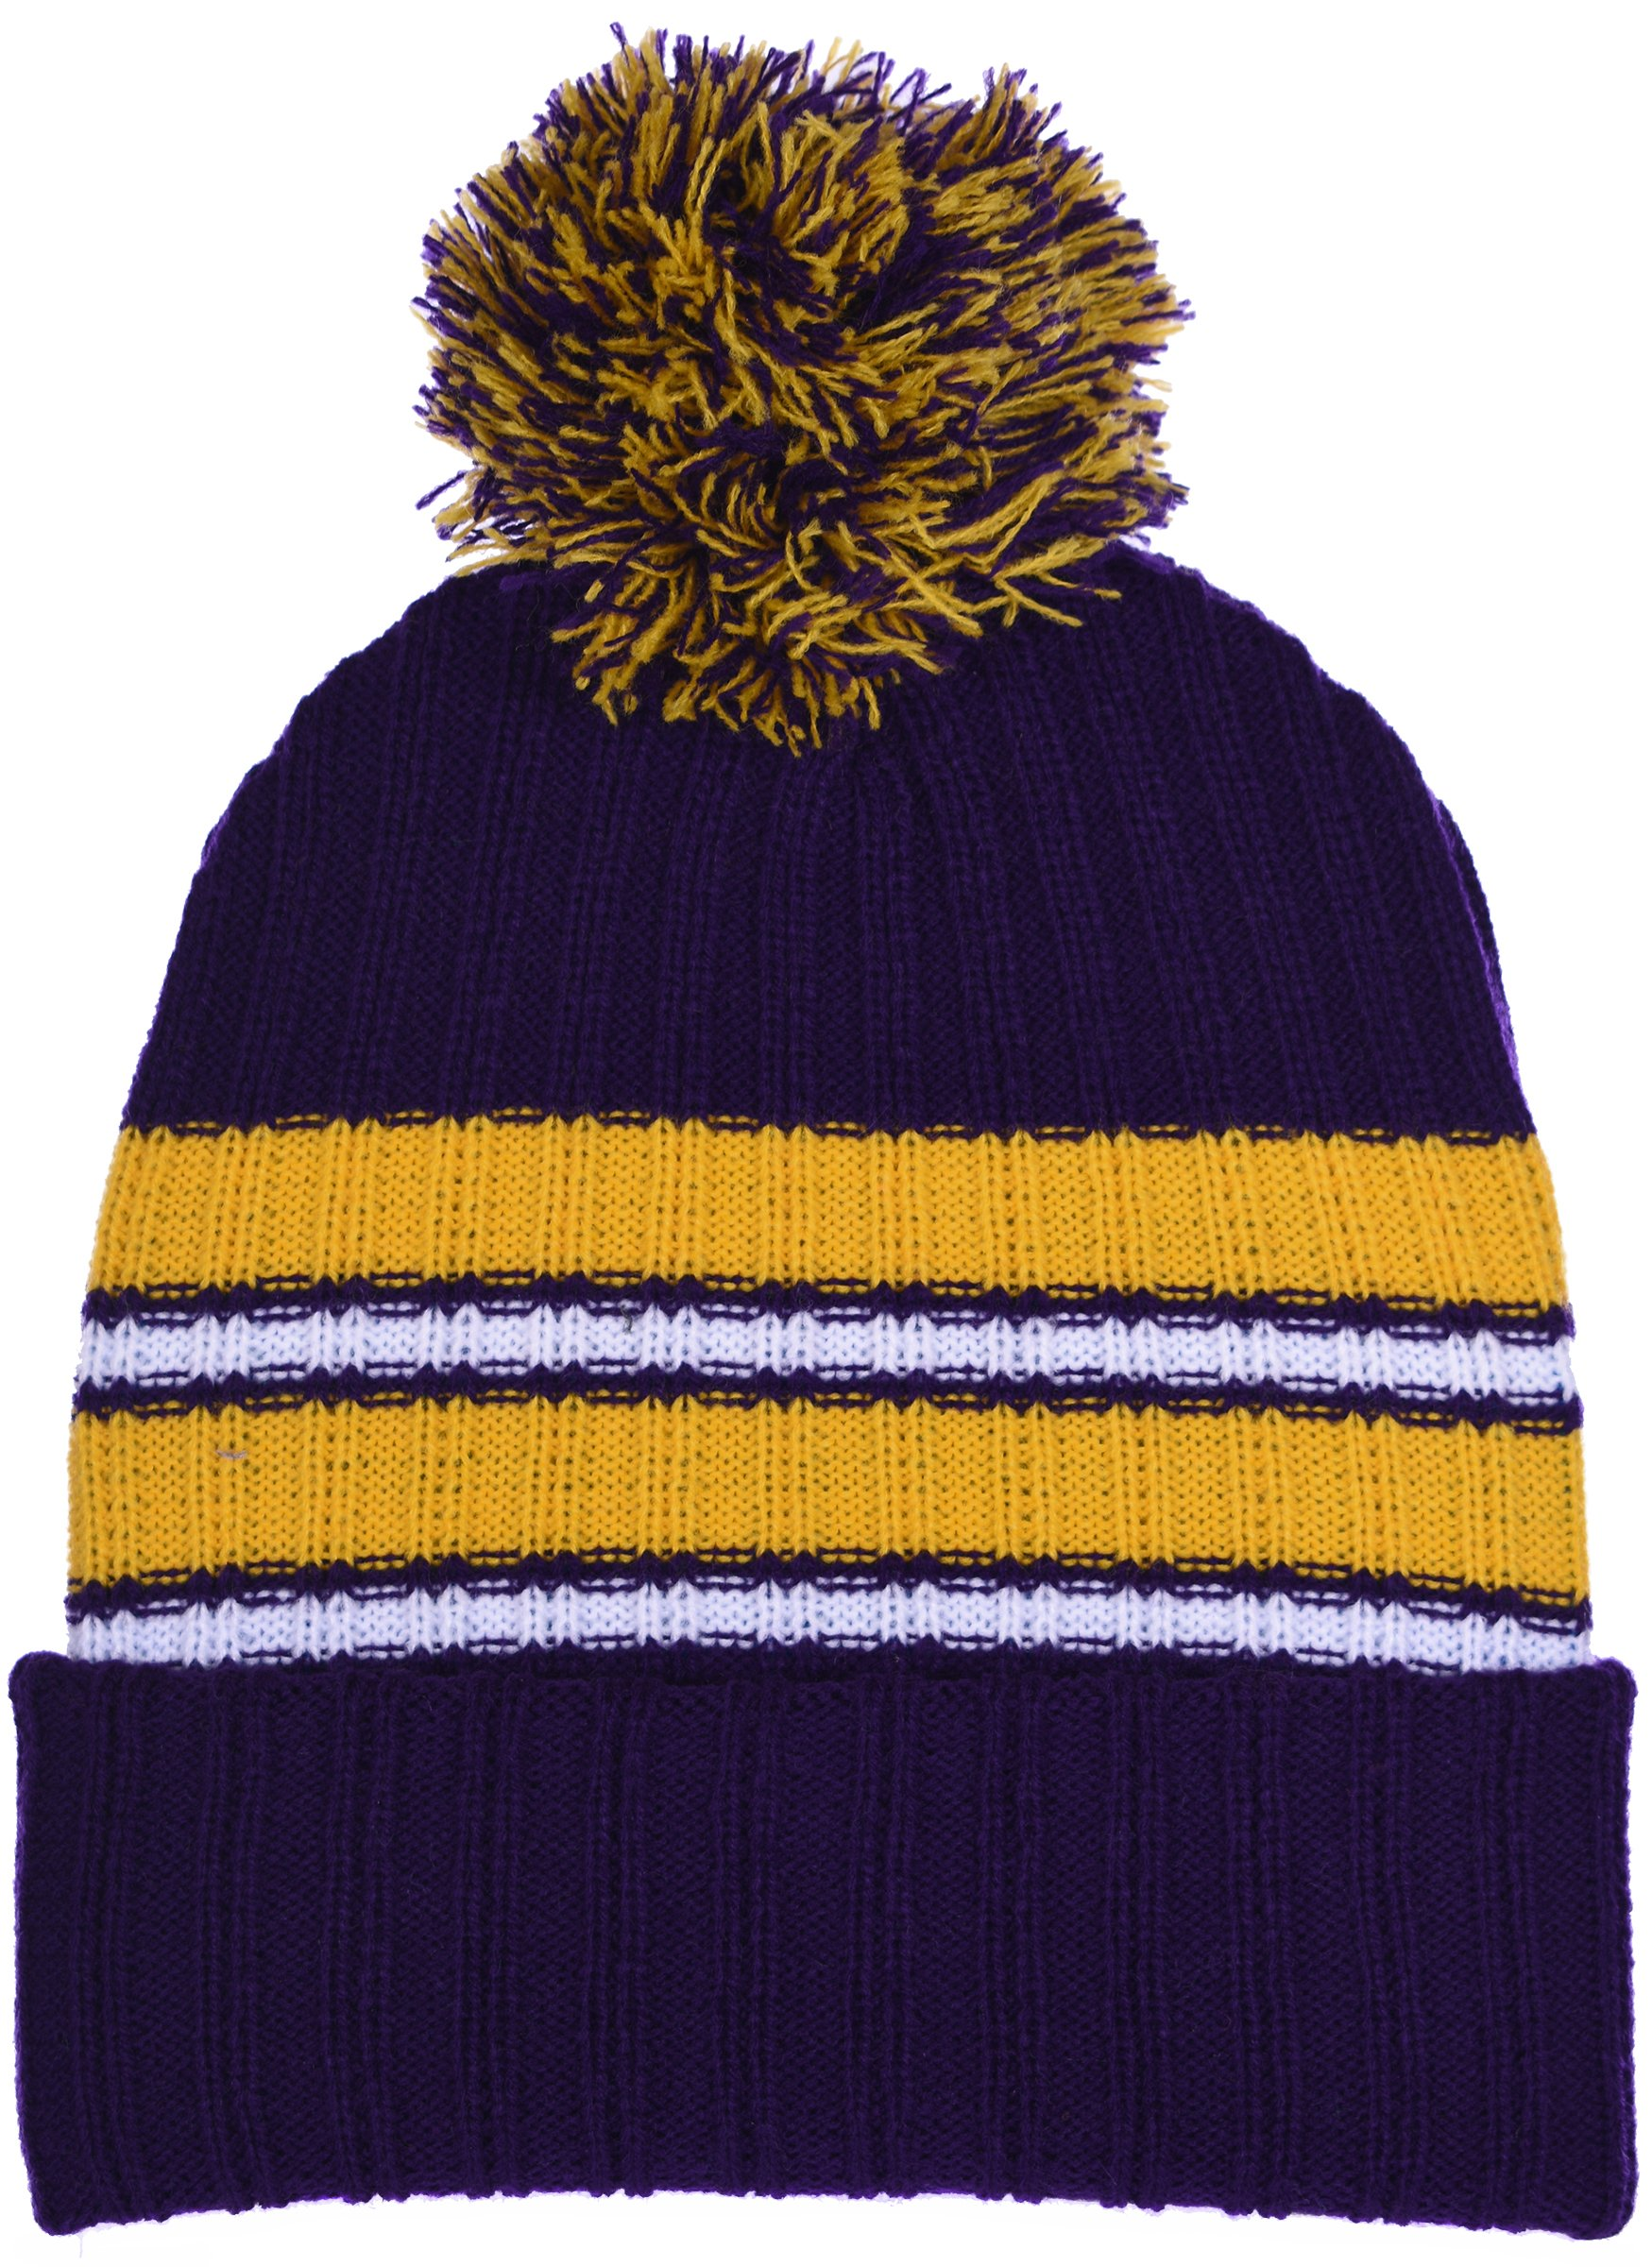 Polar Wear Boy's Cuffed Knit Hat with Pom and Stripes in 6 Color Combinations (Purple - Yellow)